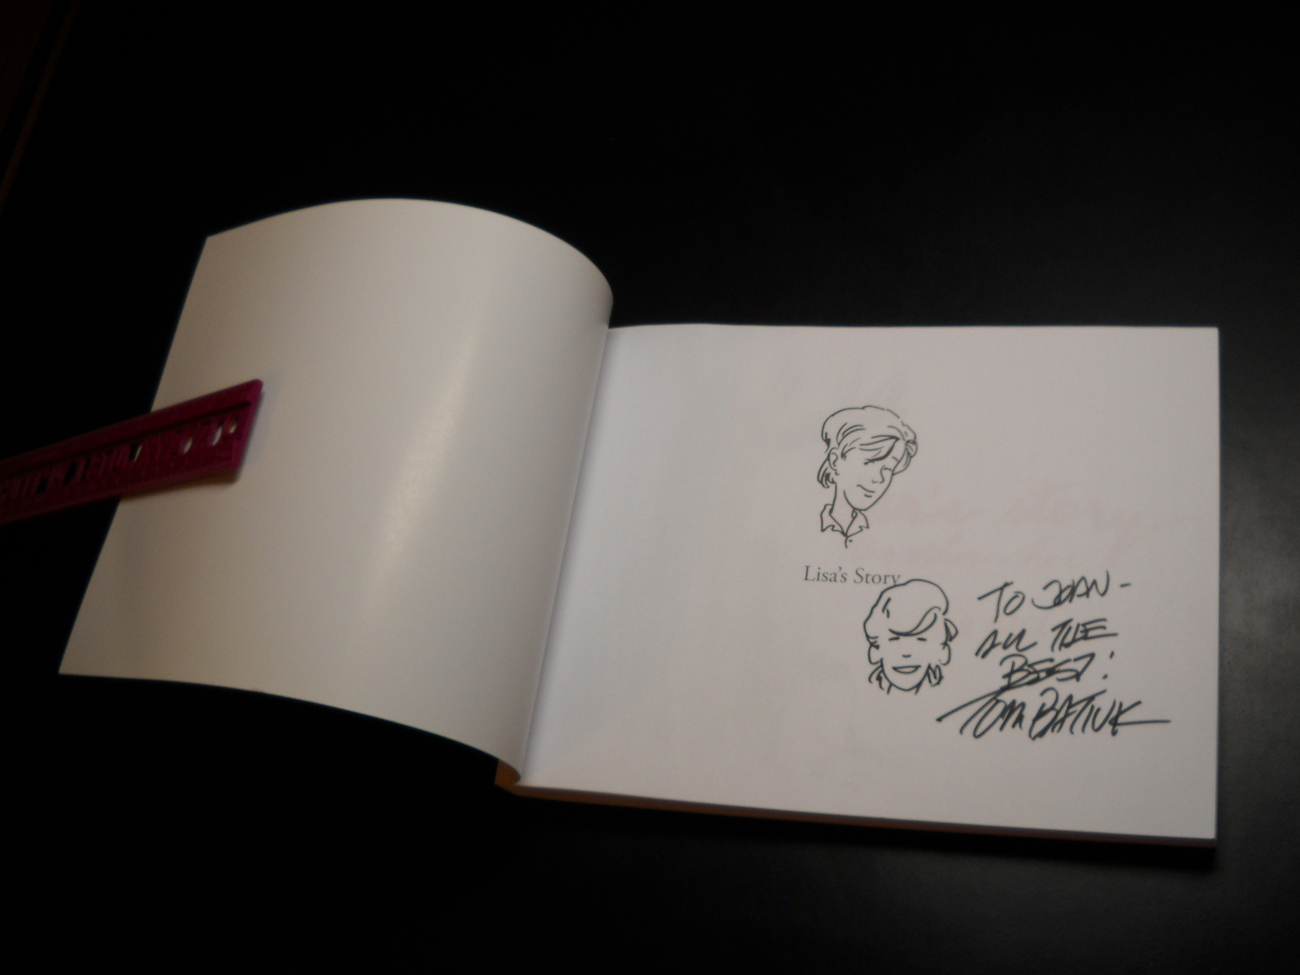 Lisa's Story The Other Shoe Tom Batiuk 2007 Signed with Lisa Remark by Author